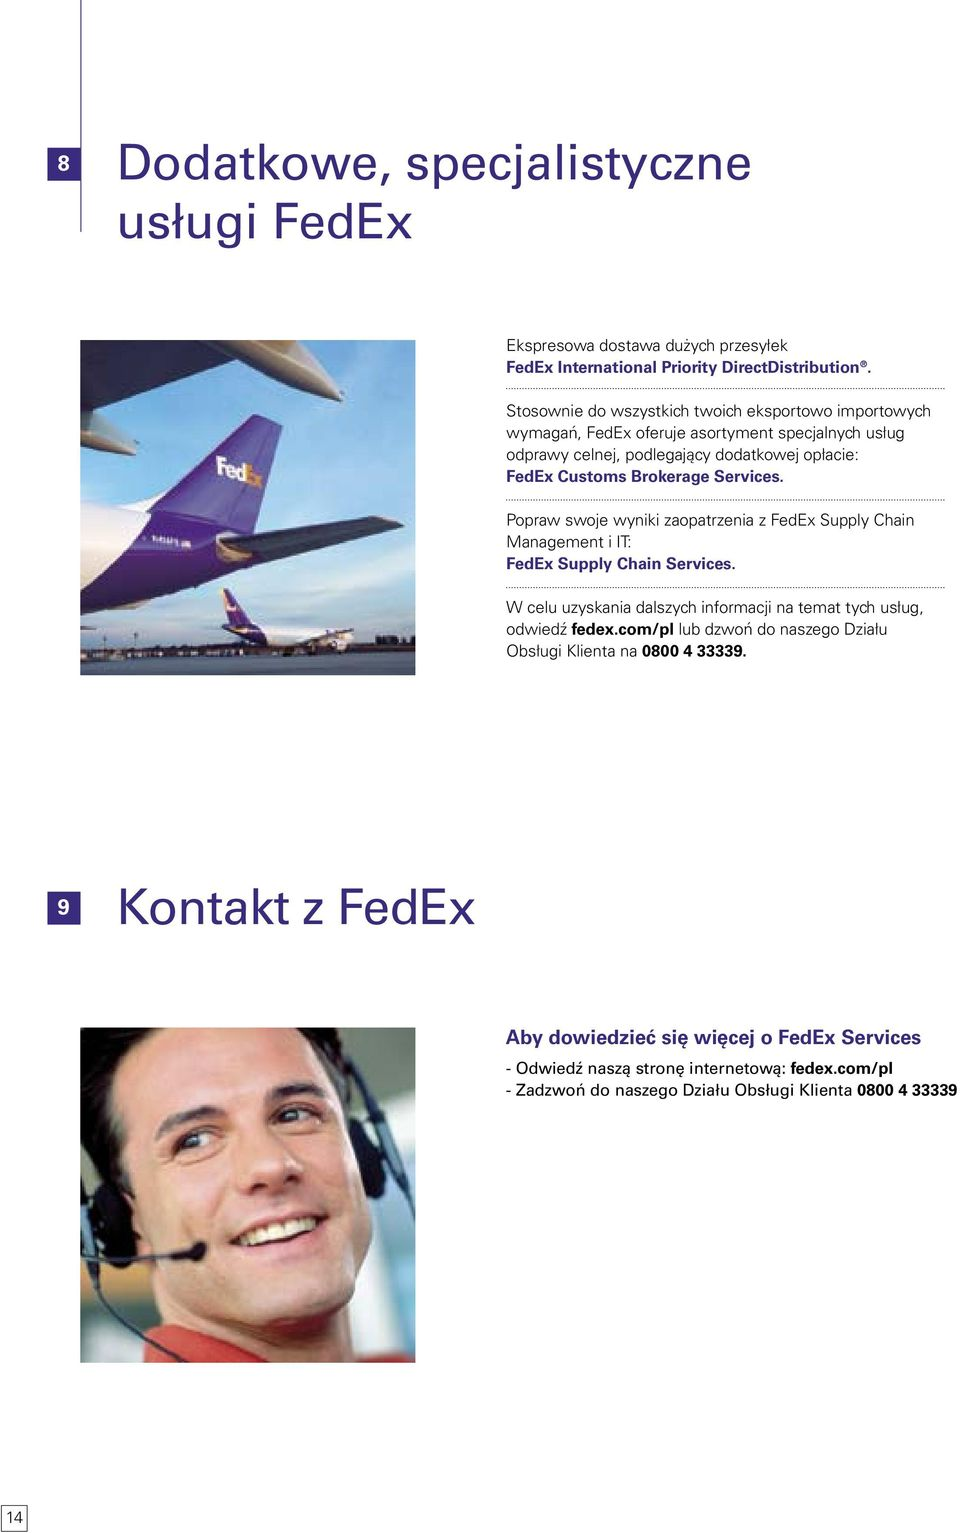 Services. Popraw swoje wyniki zaopatrzenia z FedEx Supply Chain Management i IT: FedEx Supply Chain Services.